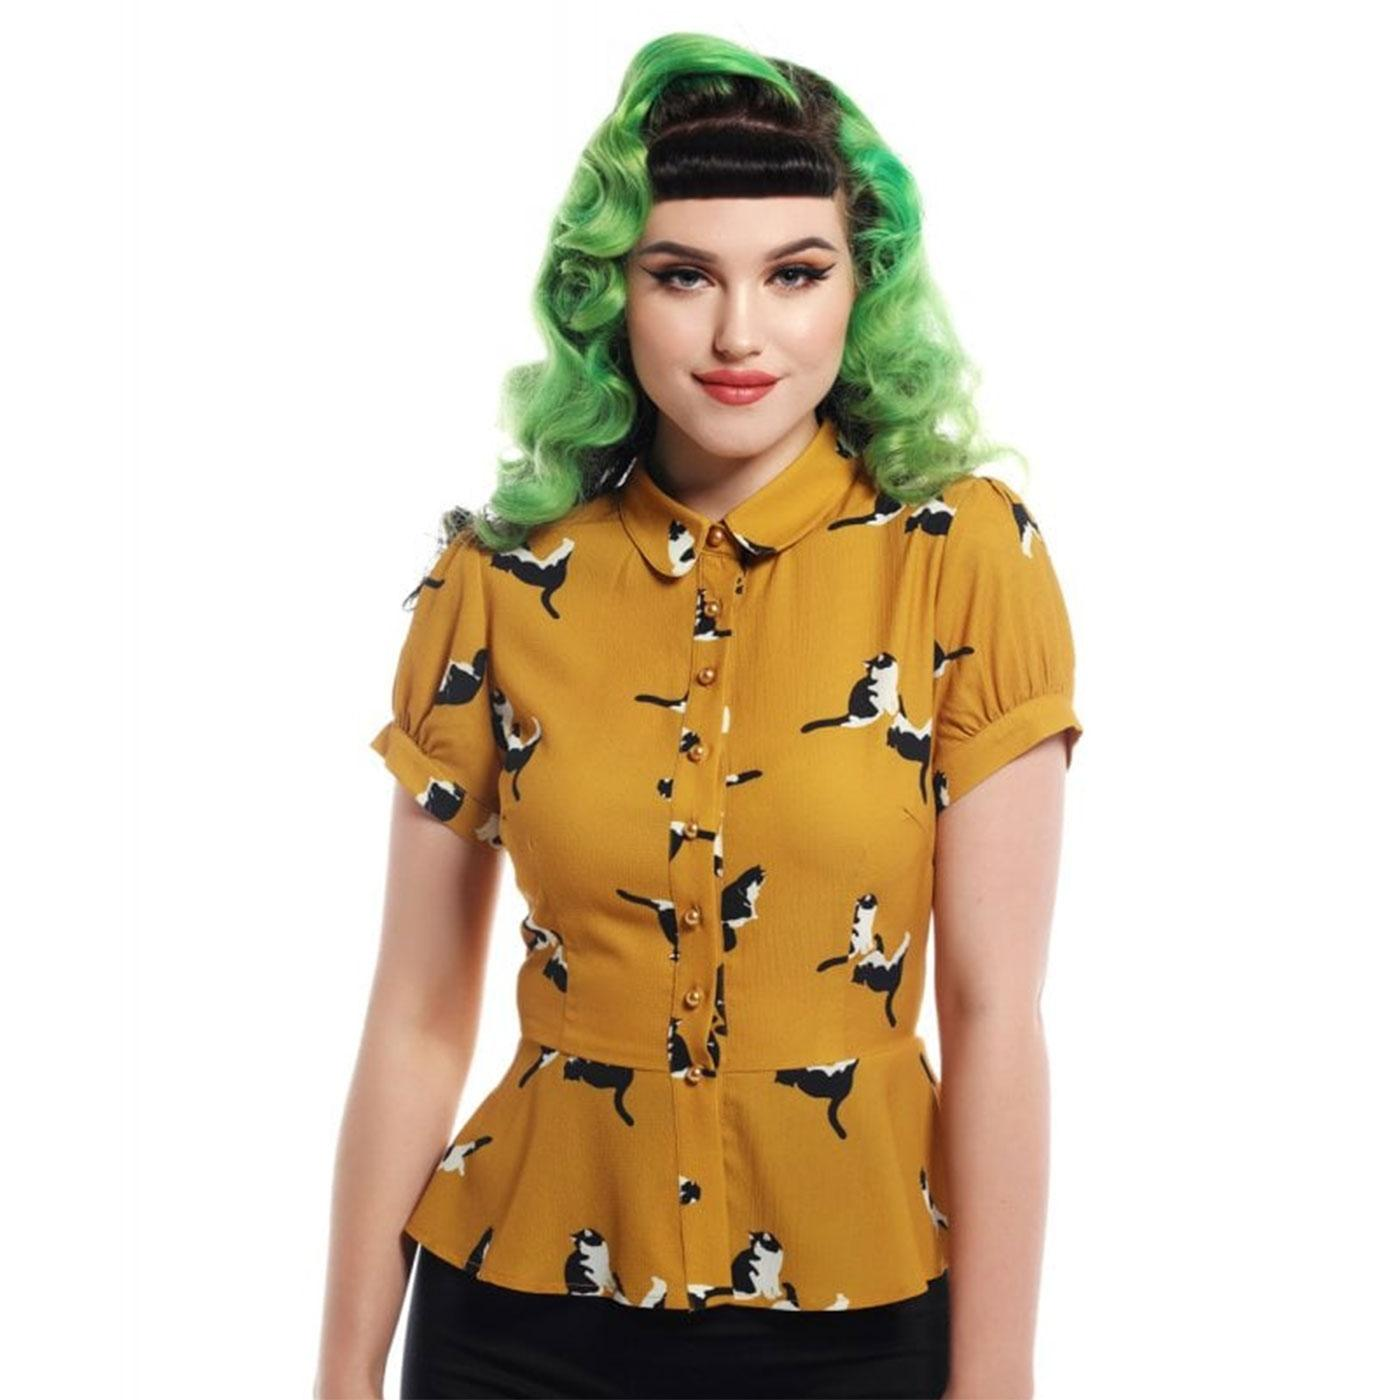 Mary Grace COLLECTIF Retro 50s Kitty Print Shirt